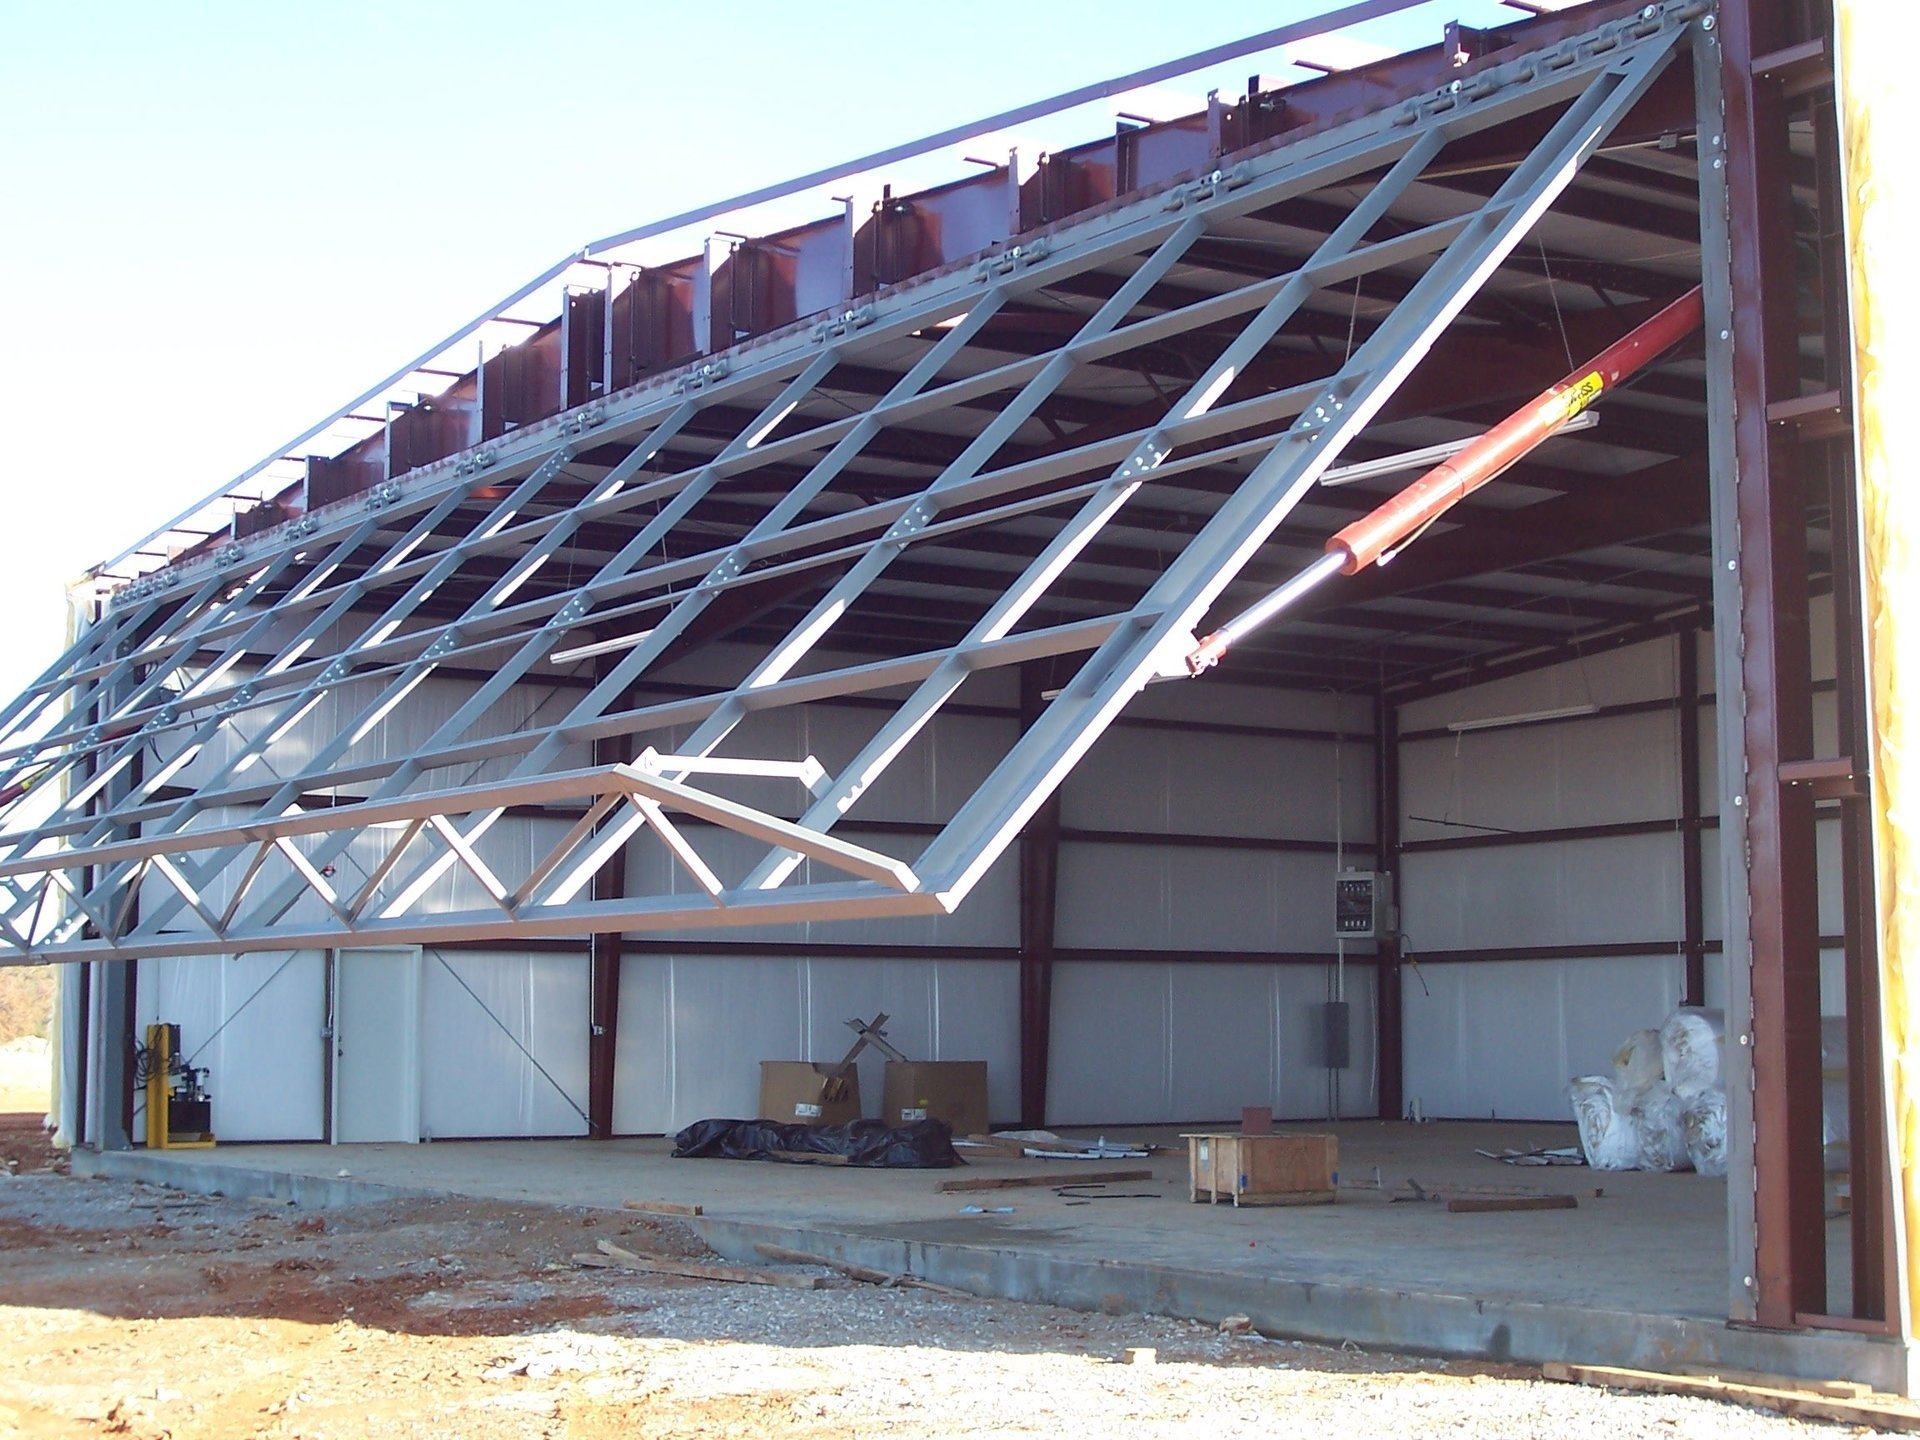 Construction and Roofing Work